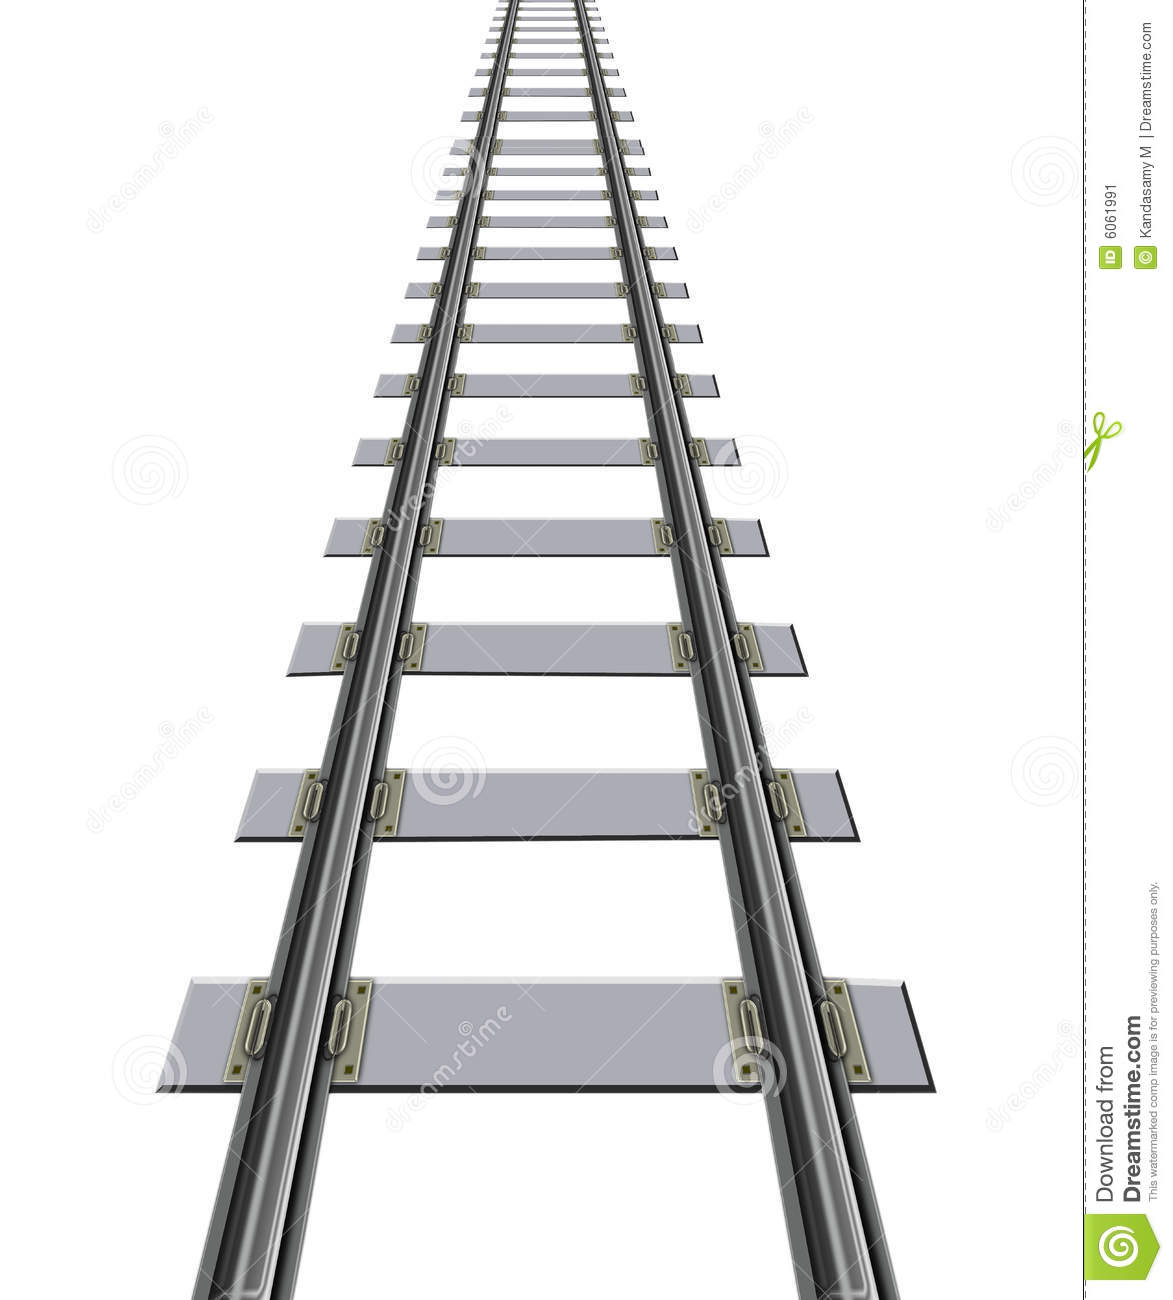 Railway Track Stock Image Image Of Life Strength